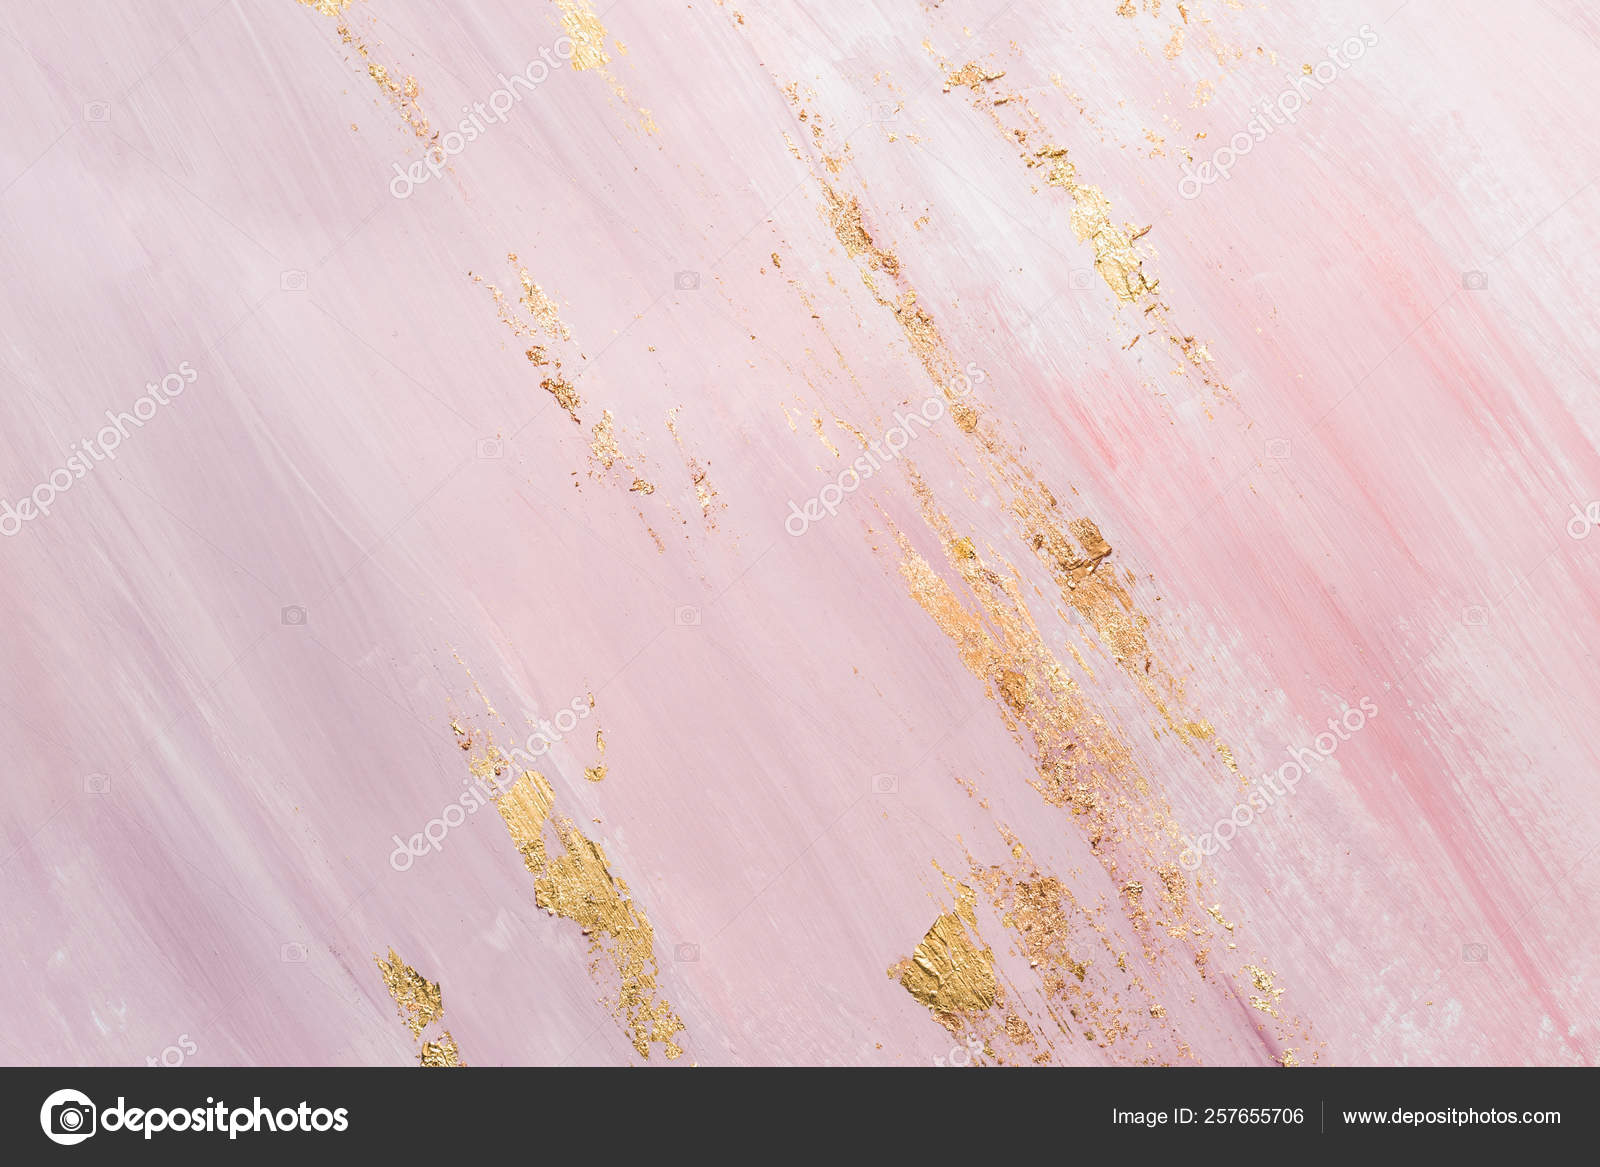 Delicate Pink Marble Background With Gold Brushstrokes Place For Your Design Stock Photo C Colnihko 257655706